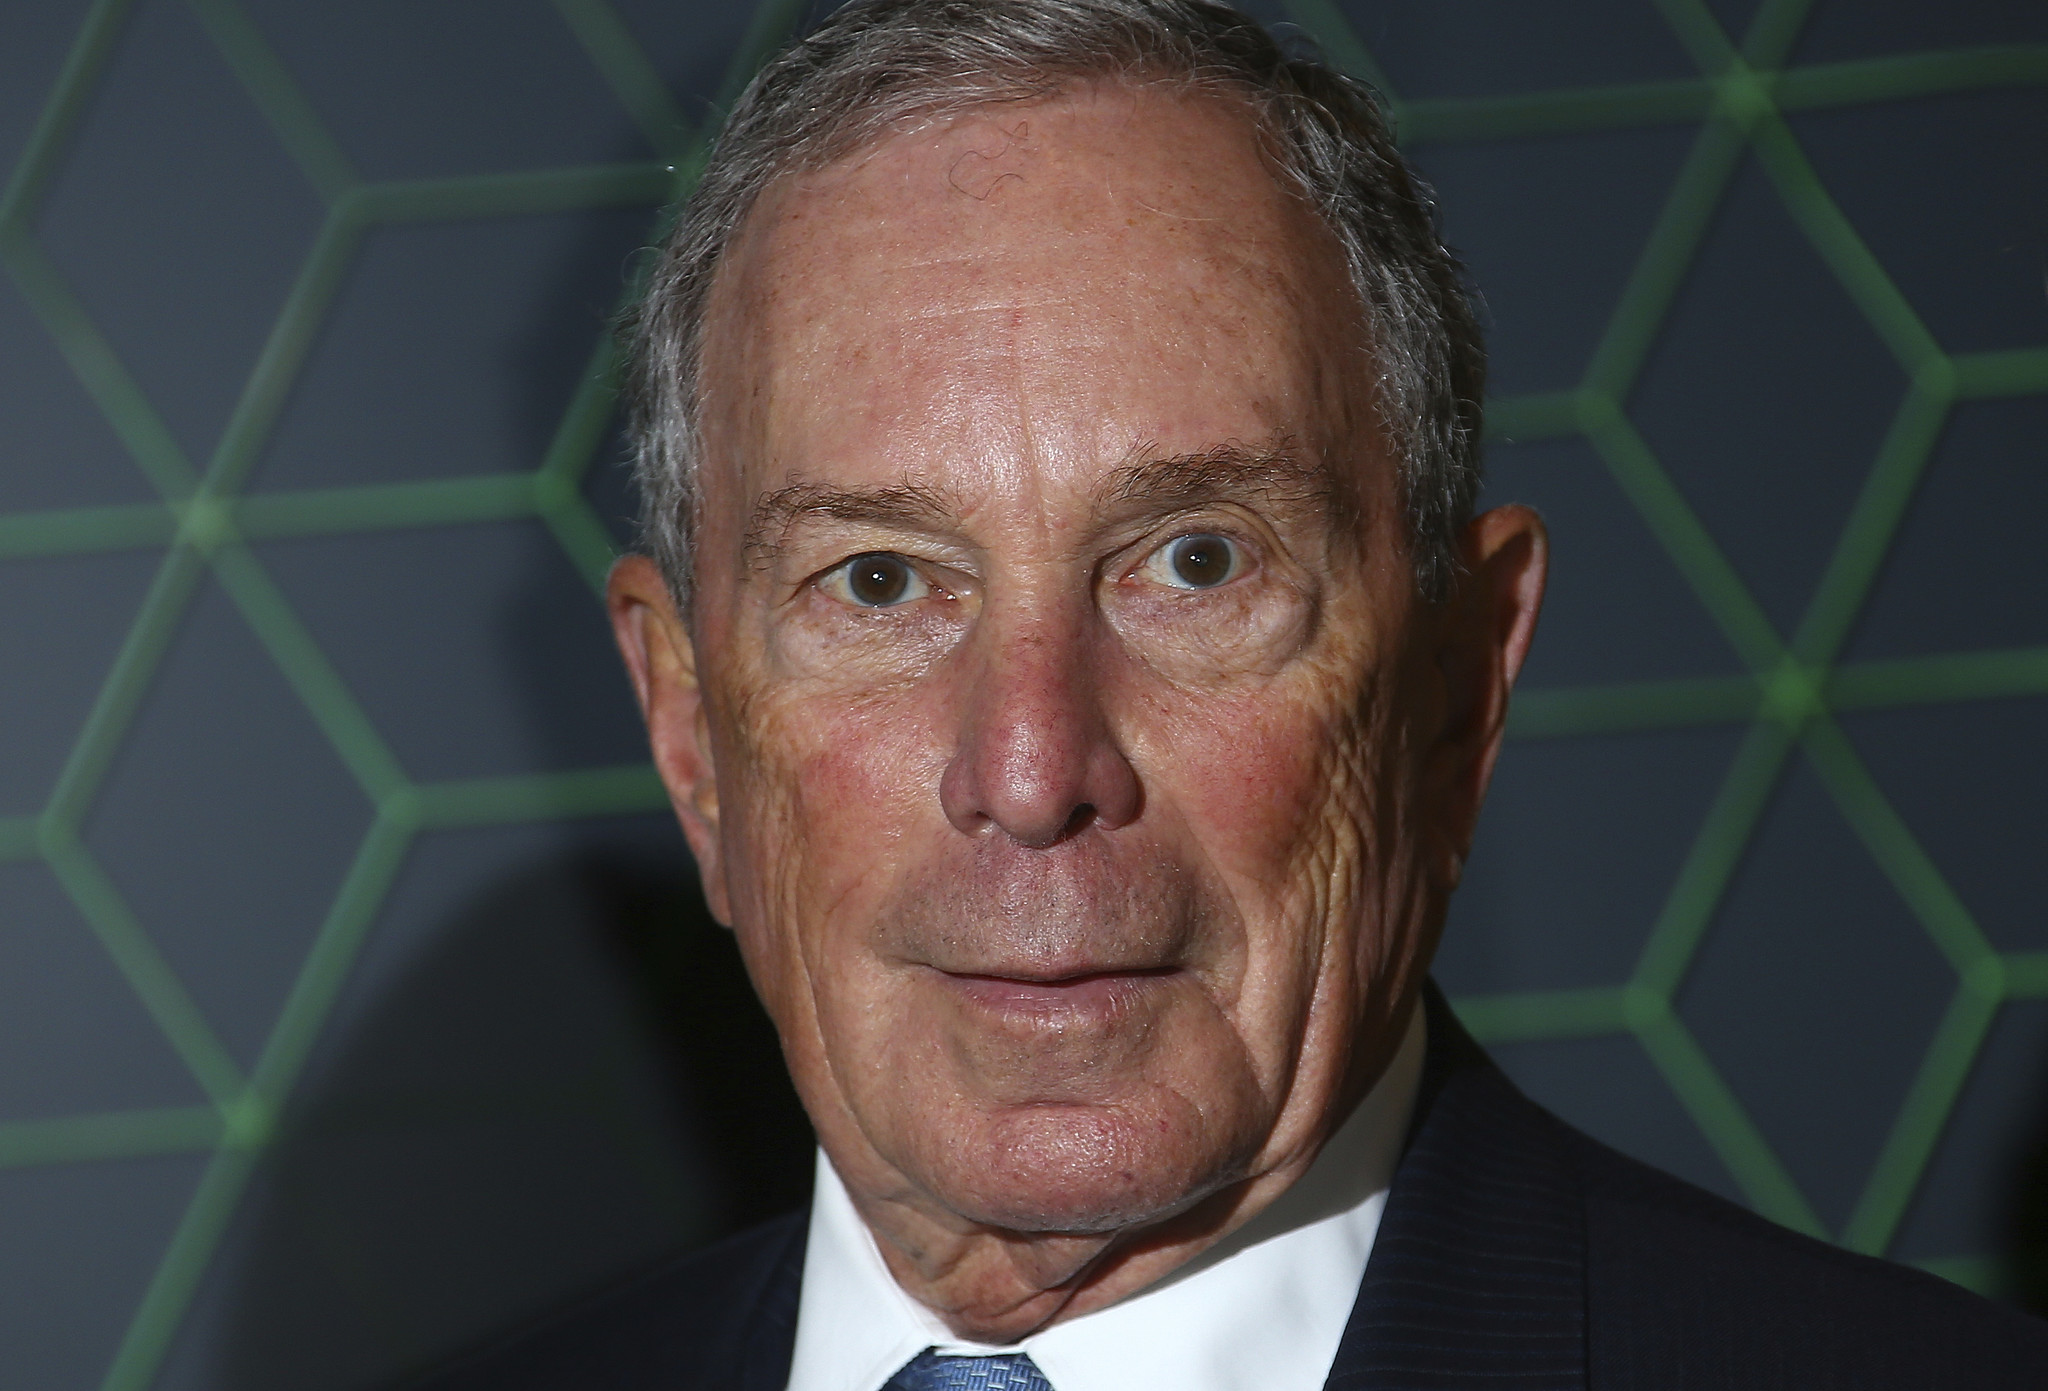 Iowa, New Hampshire Dems call on Michael Bloomberg to visit the key primary states if he's serious about 2020 bid